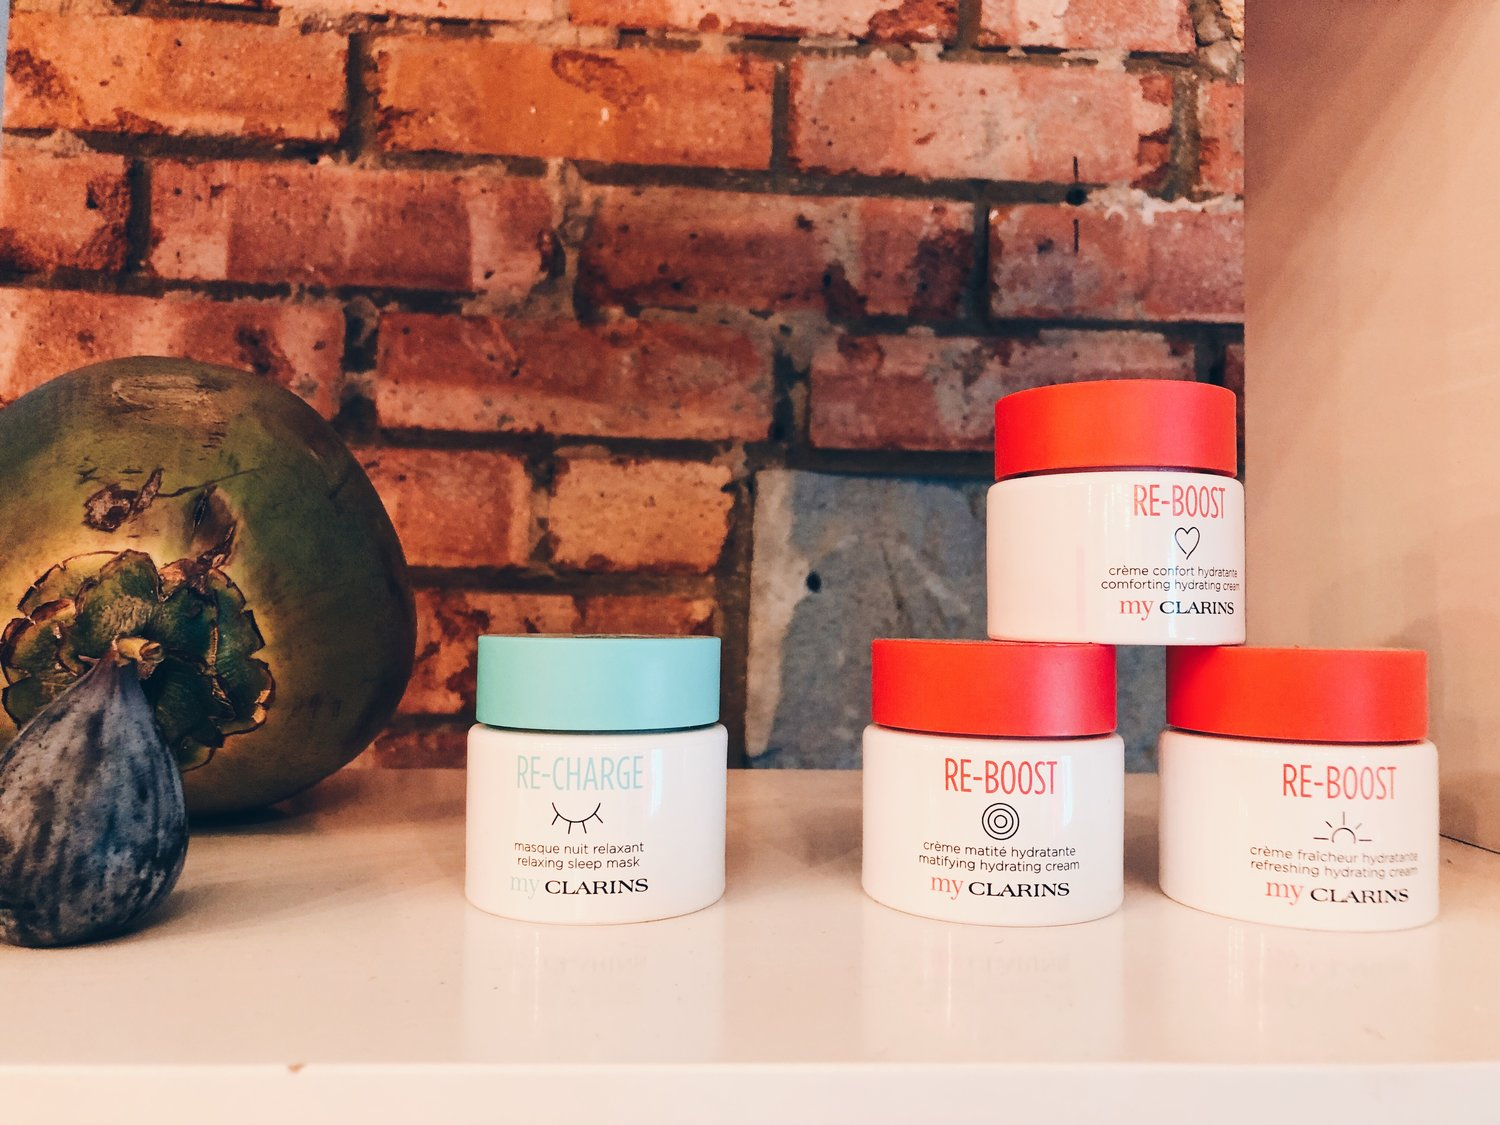 My Clarins RE-BOOST Refreshing Hydrating Cream by Clarins #11